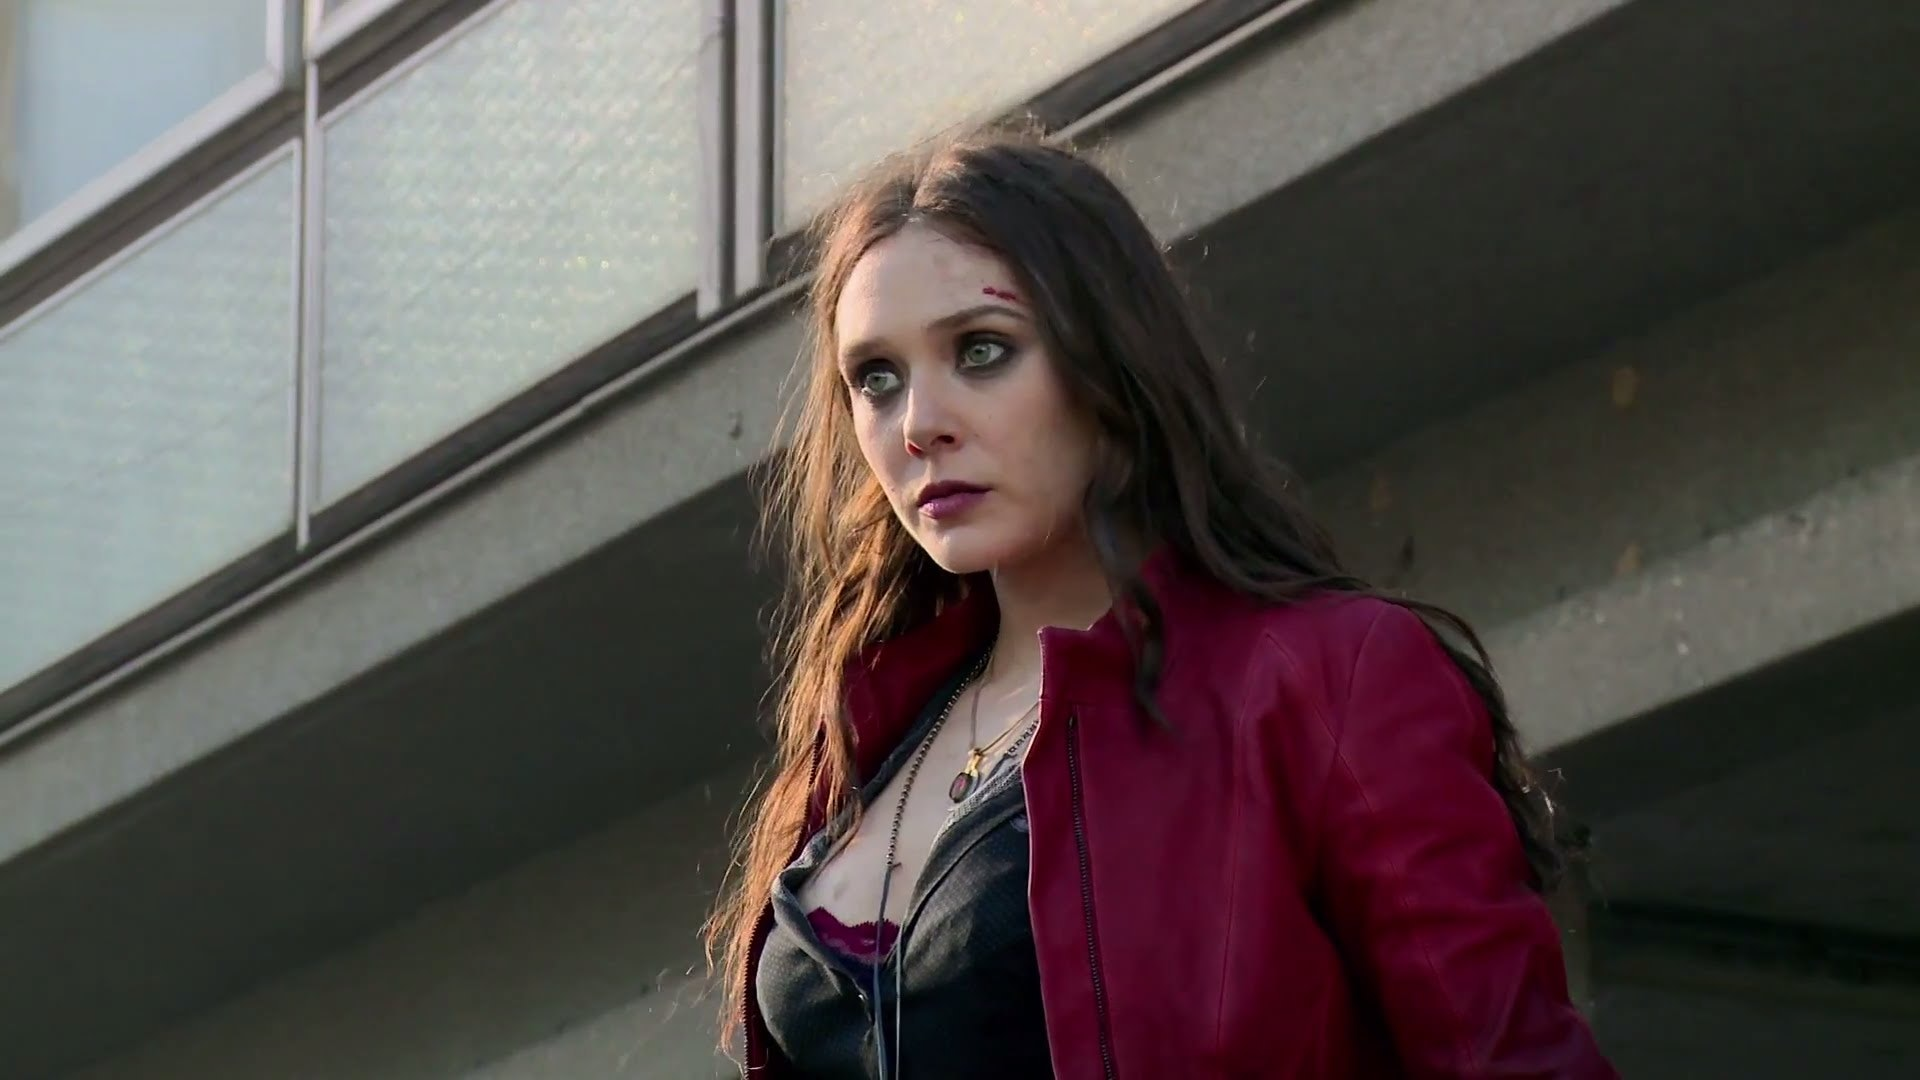 Loki  Scarlet Witch Should Be In An Avengers Movie Together